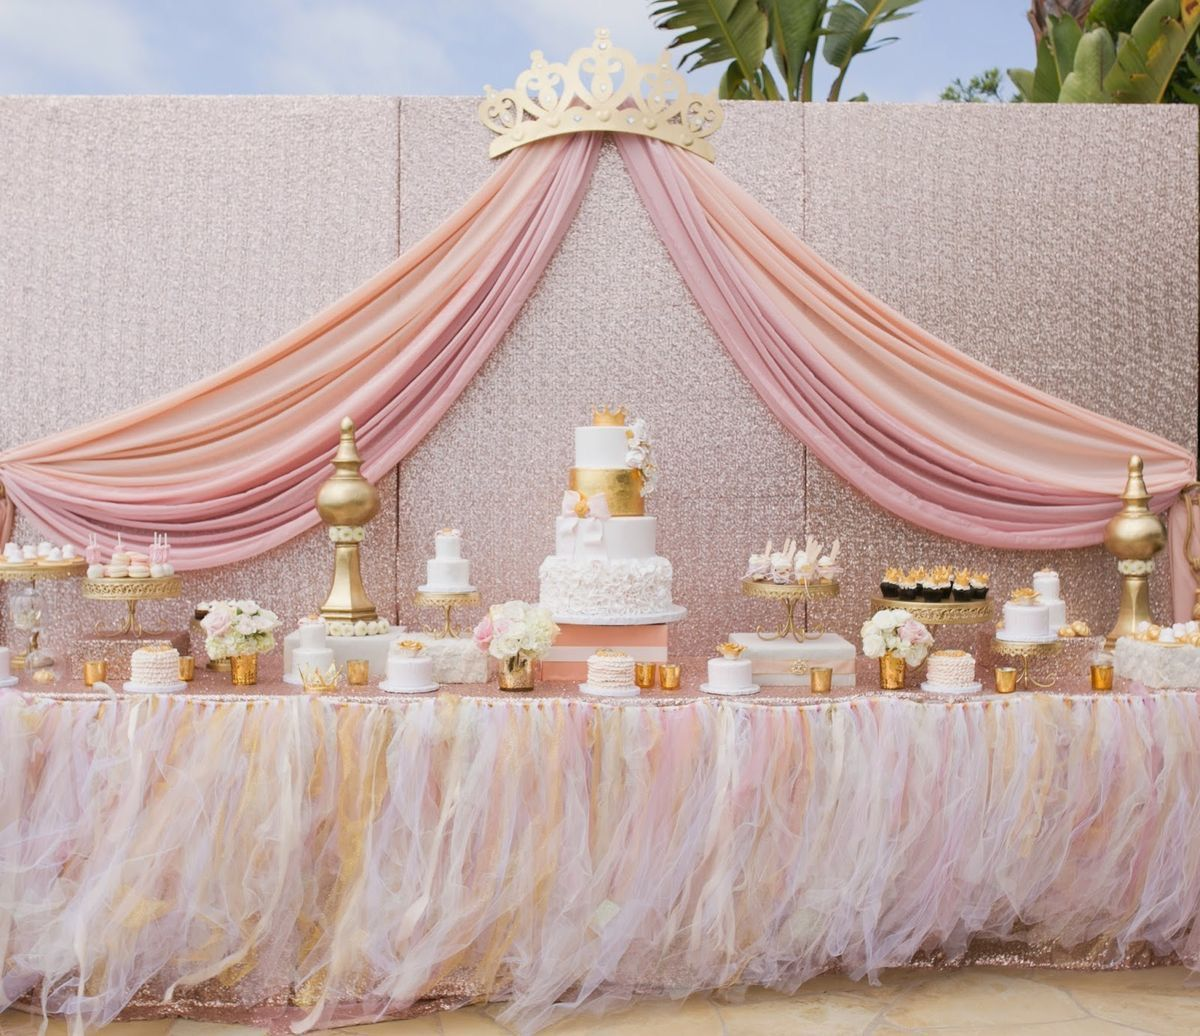 Royal Wedding Themed Desserts: Dessert Table Idea // Gold Chandelier Cake Stands By